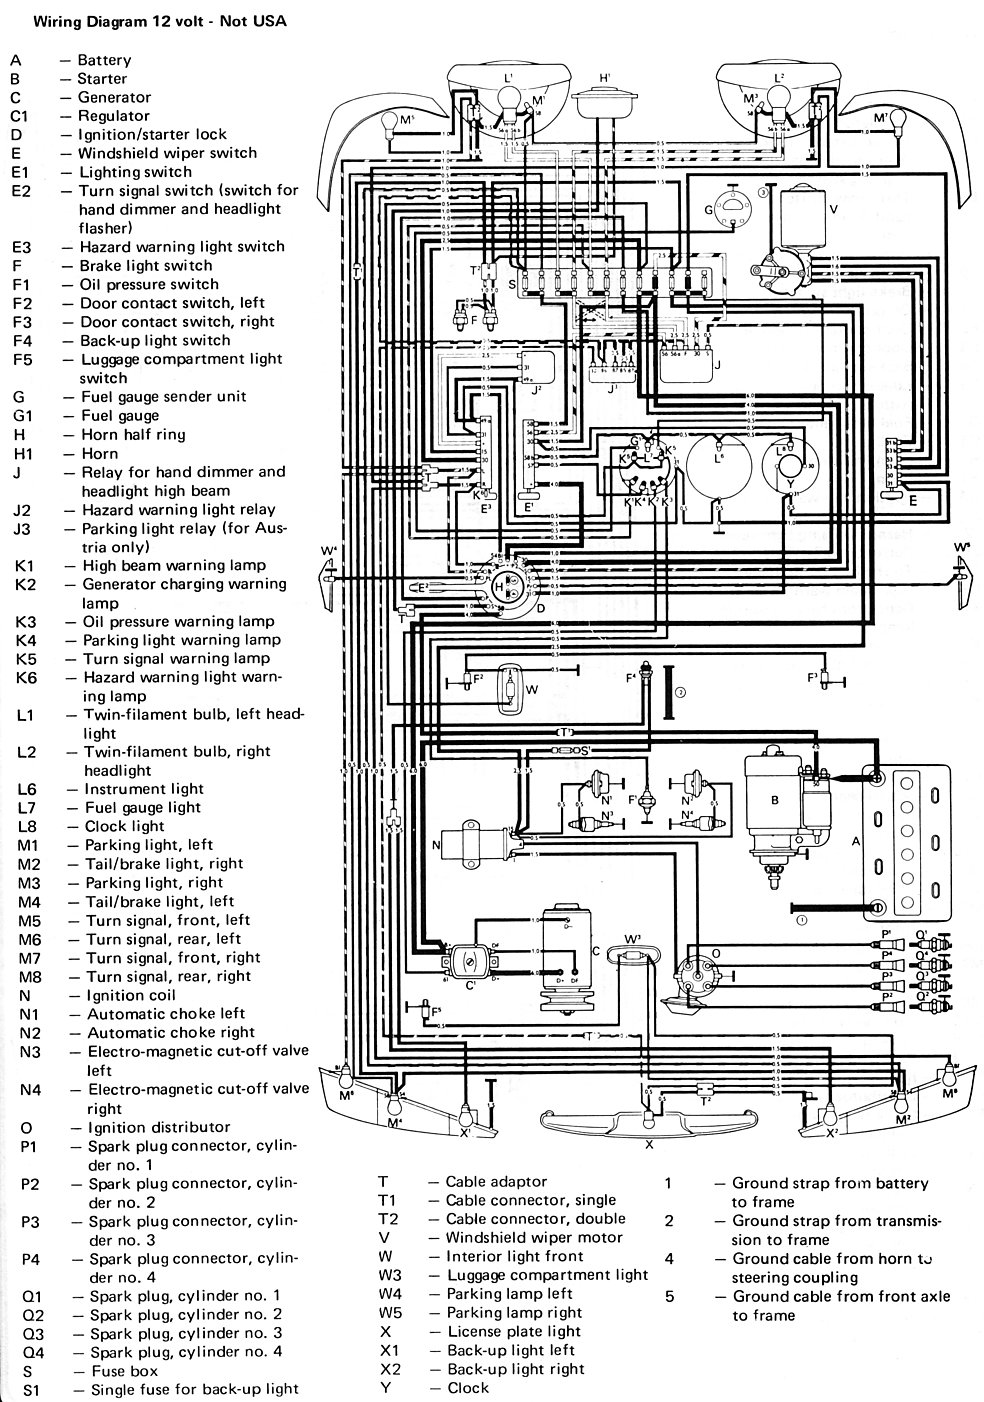 1974 Corvette Wiring Diagram. Corvette. Auto Wiring Diagram